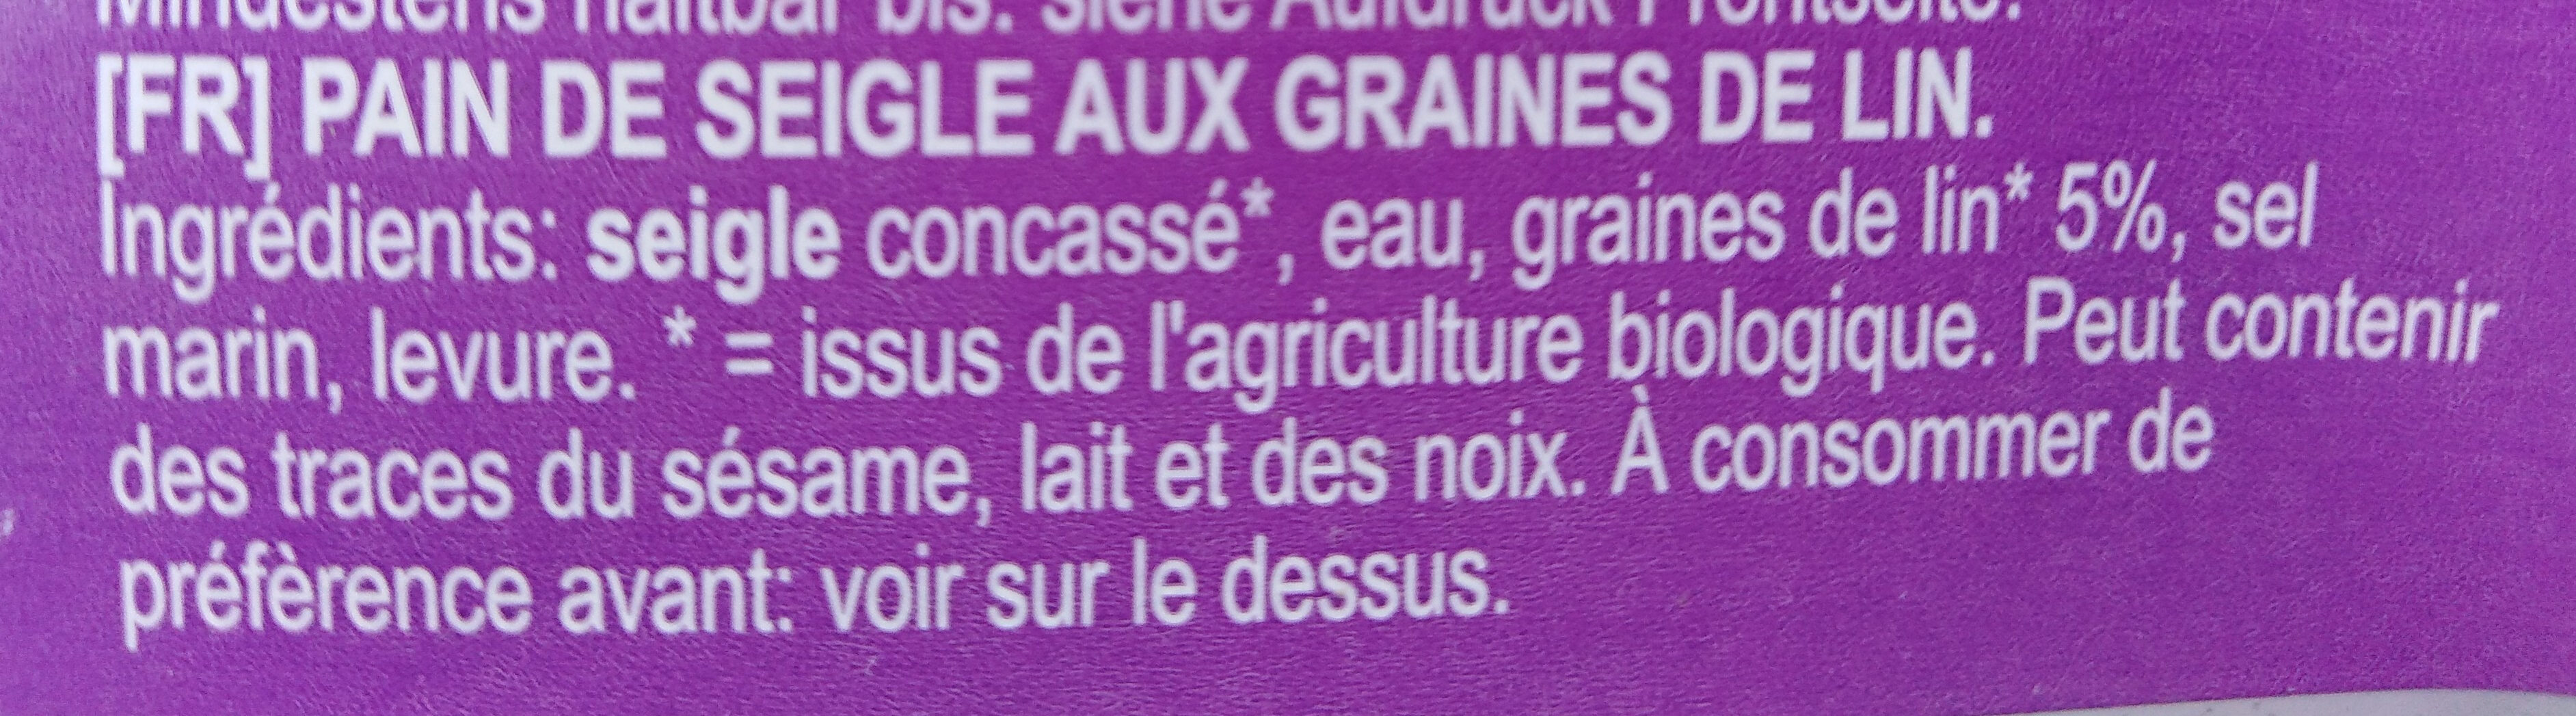 Pain de seigle aux graines de lin - Ingredients - fr